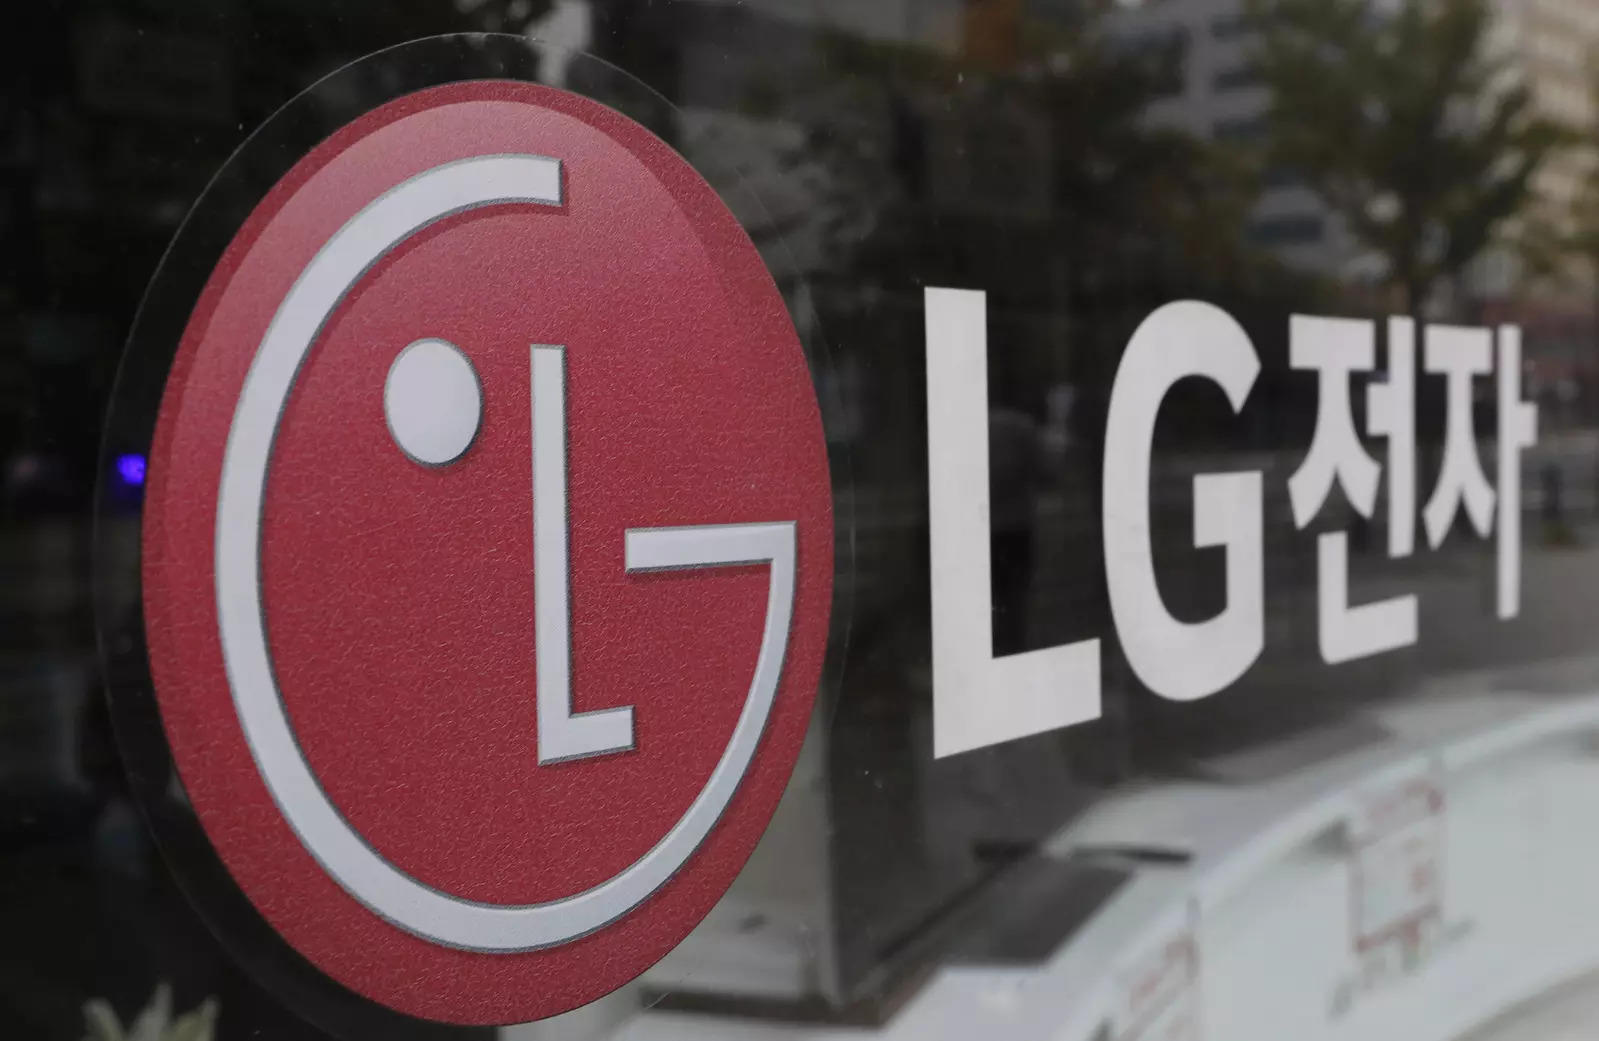 LG now sets sights on vehicle parts, AI